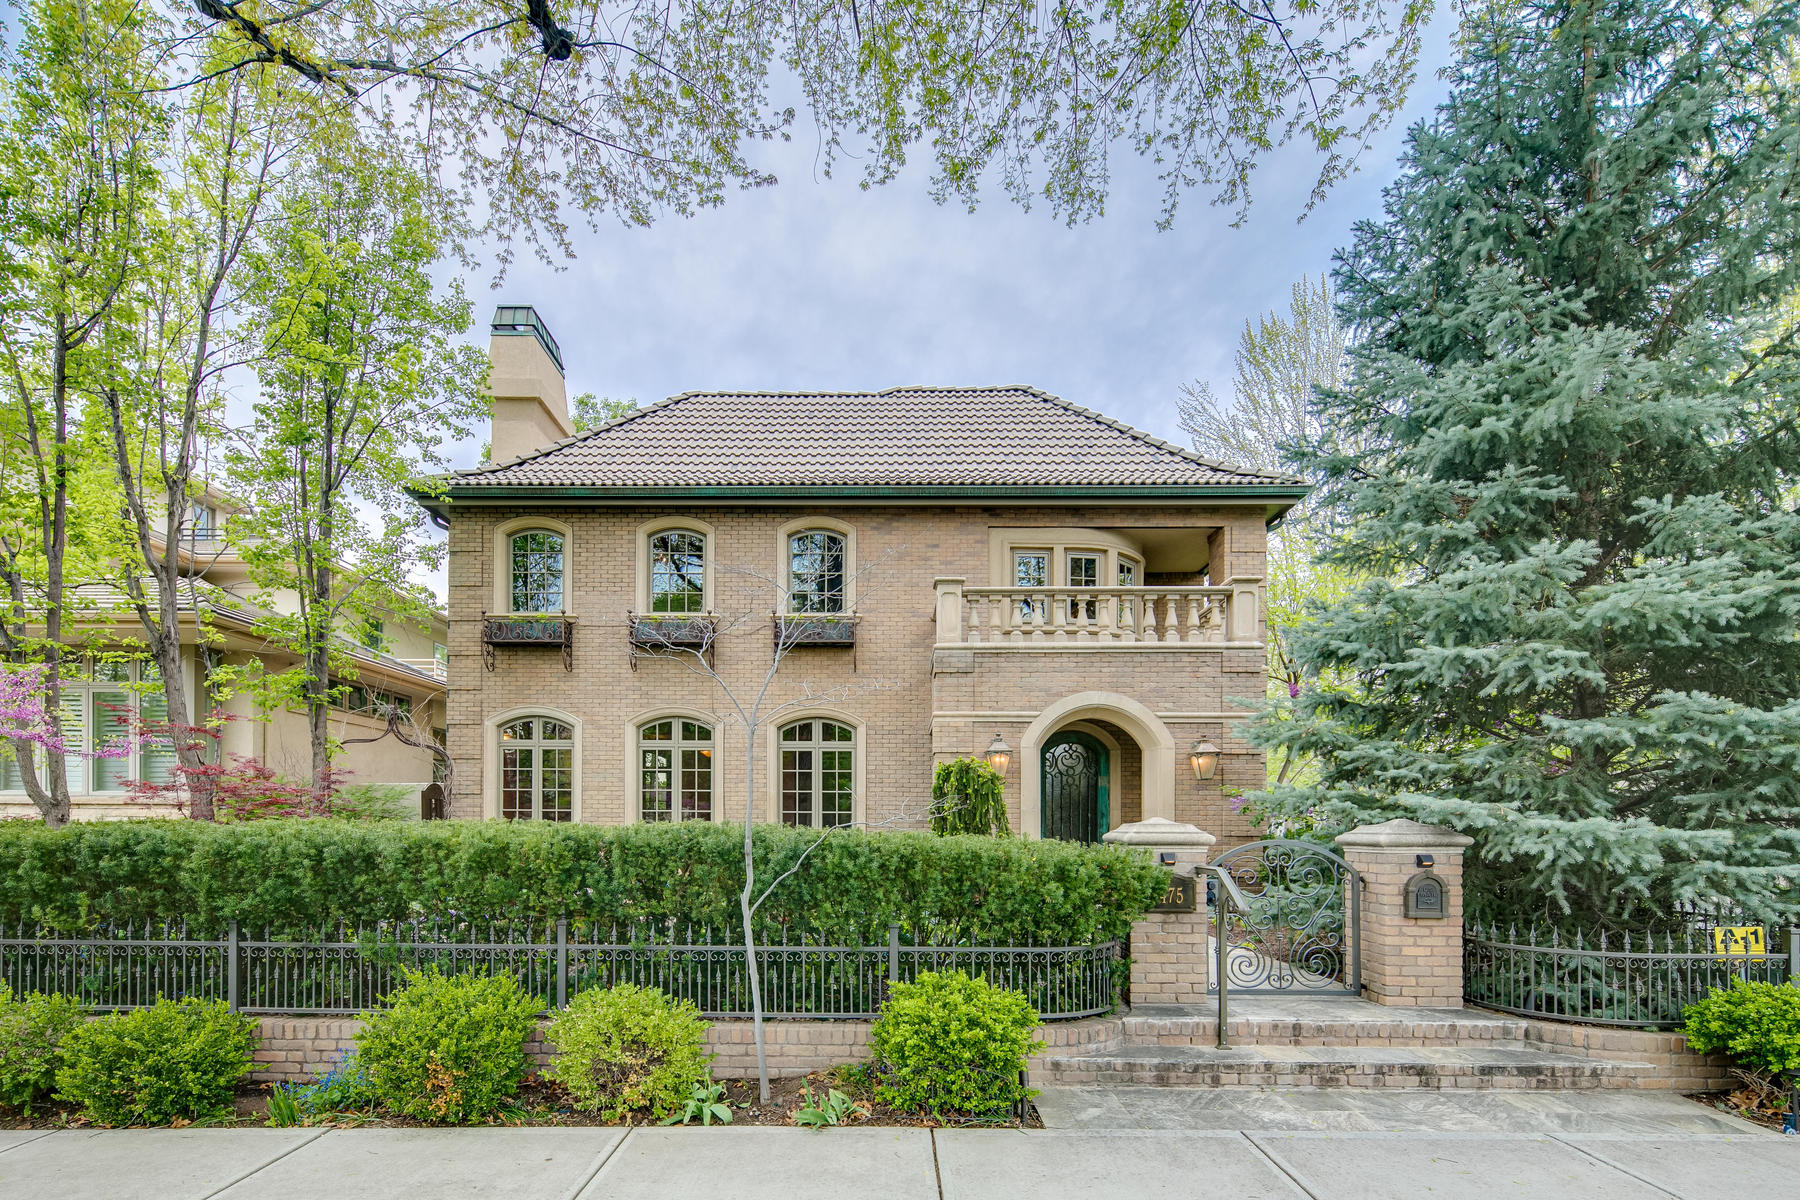 Single Family Home for Active at Incredible Mediterranean-Revival Style Home in Cherry Creek! 475 Madison Street Denver, Colorado 80206 United States